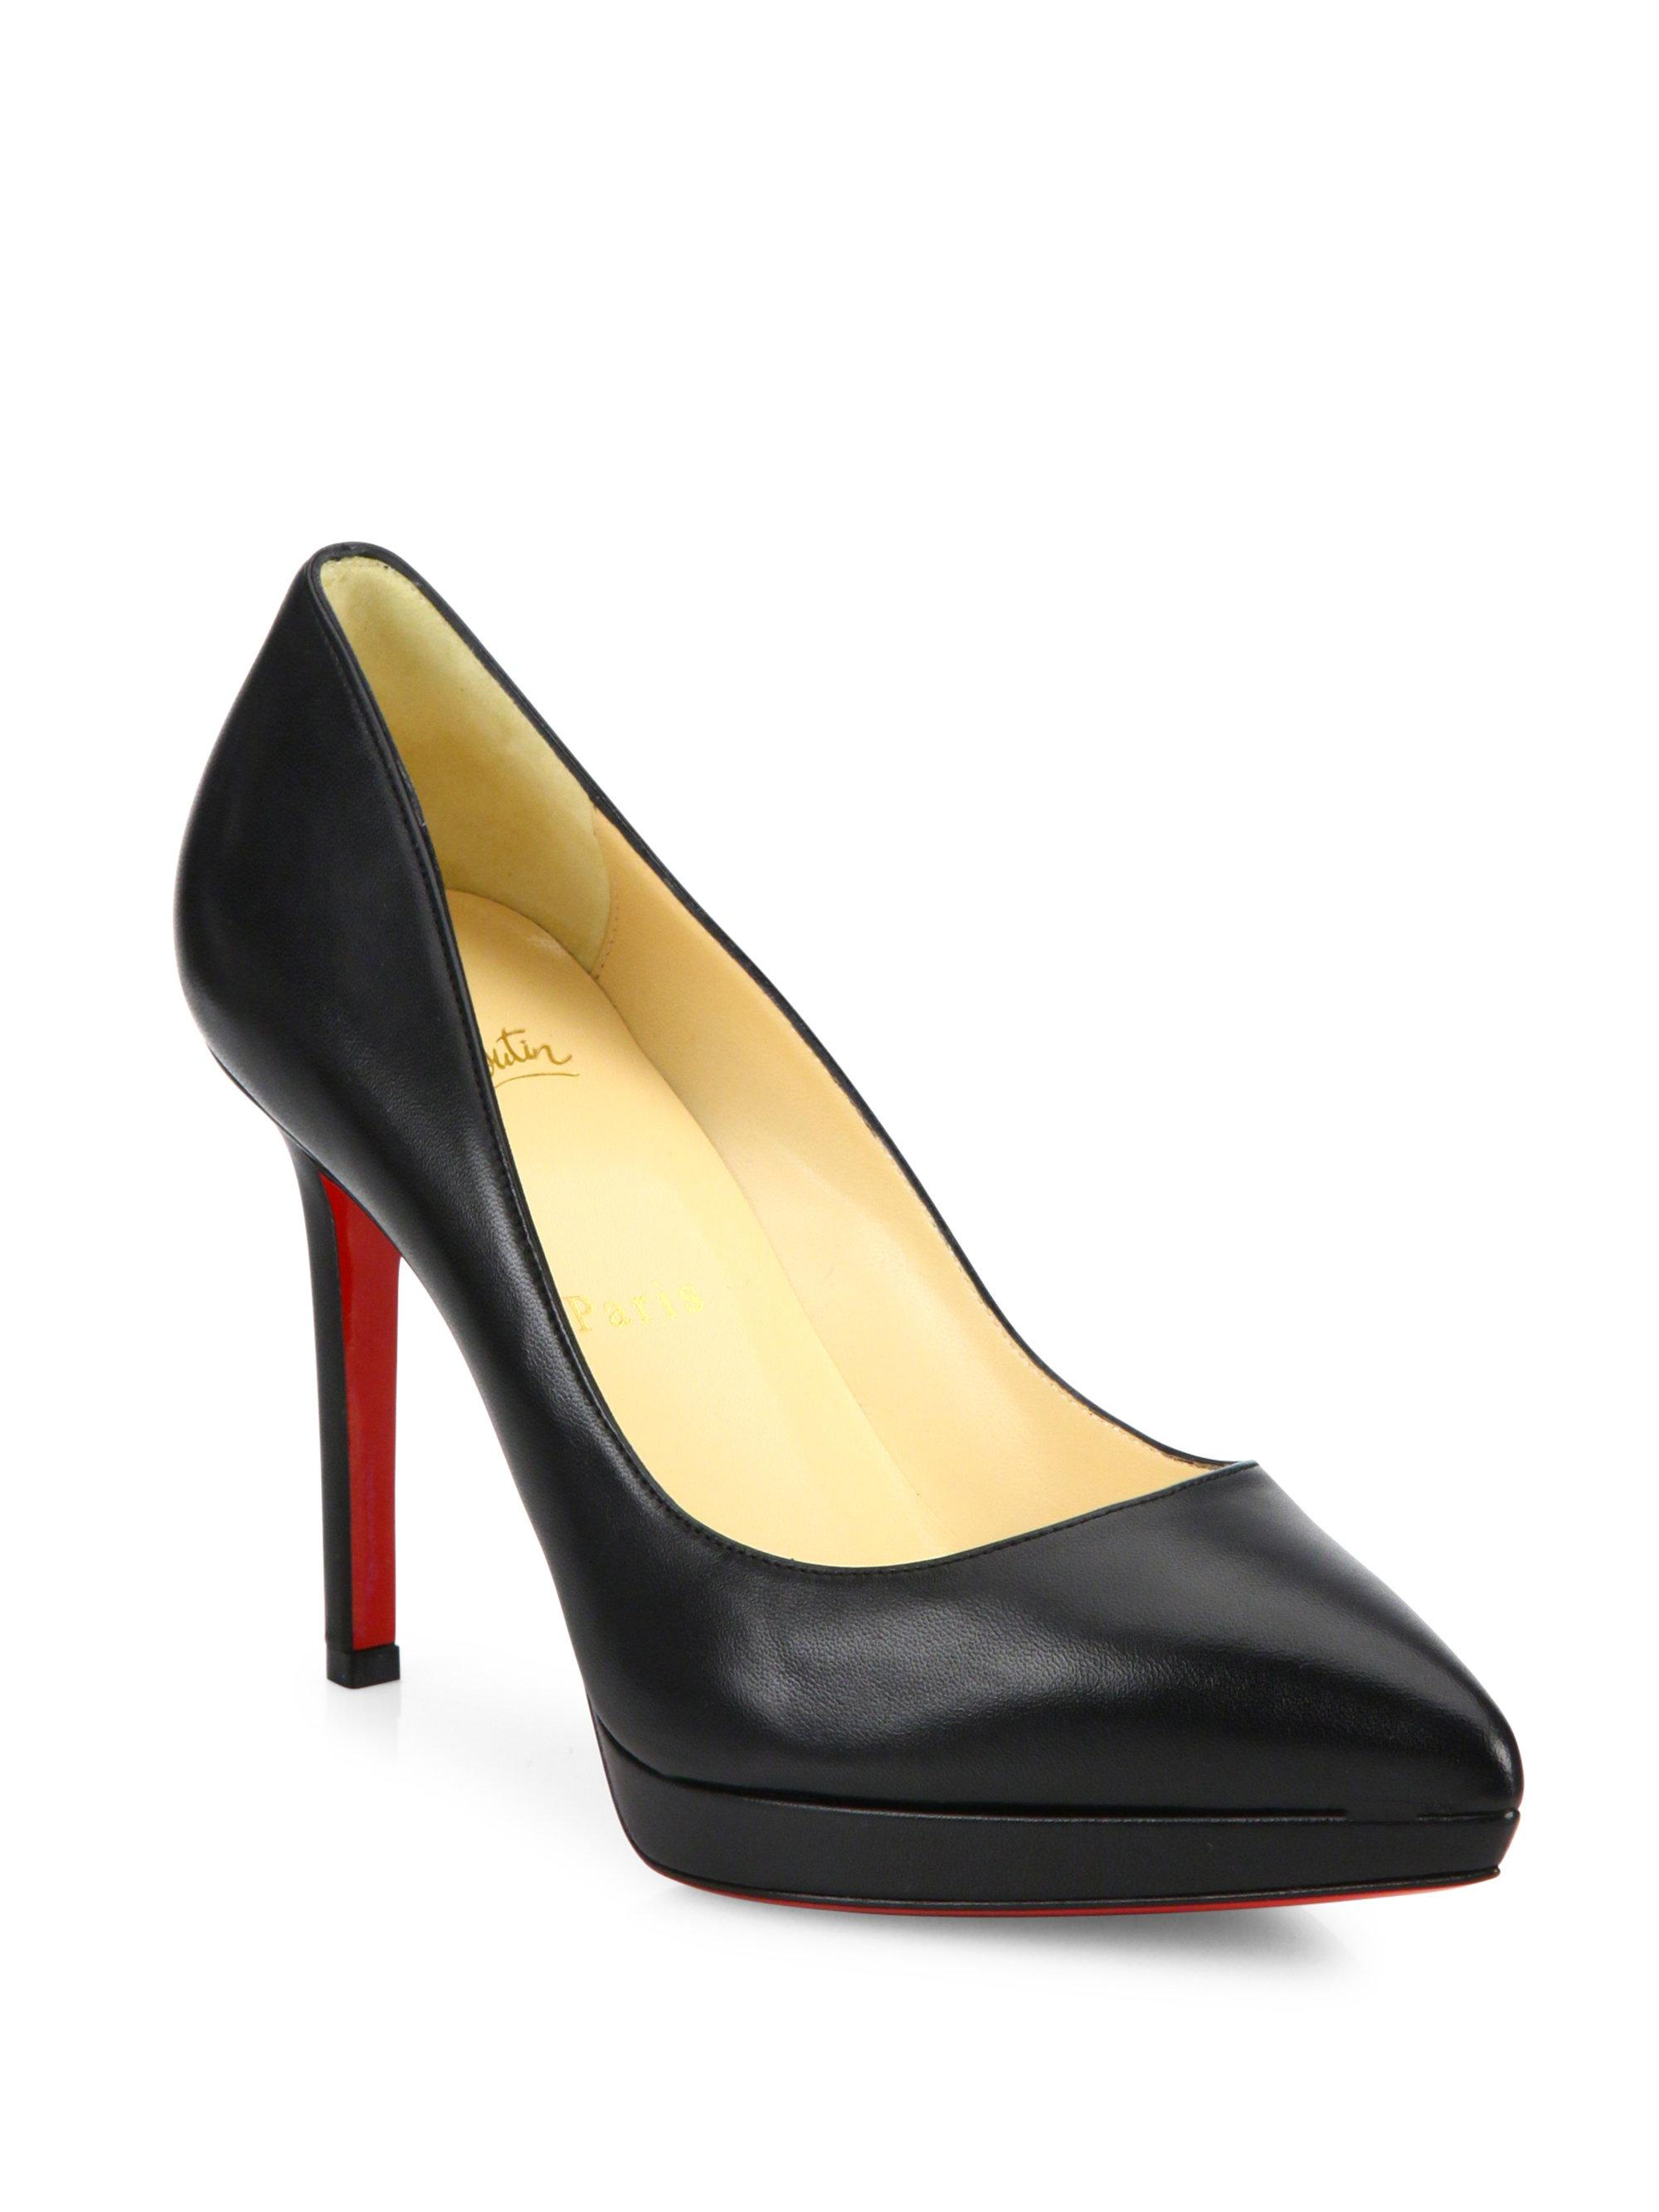 louboutin pigalle black